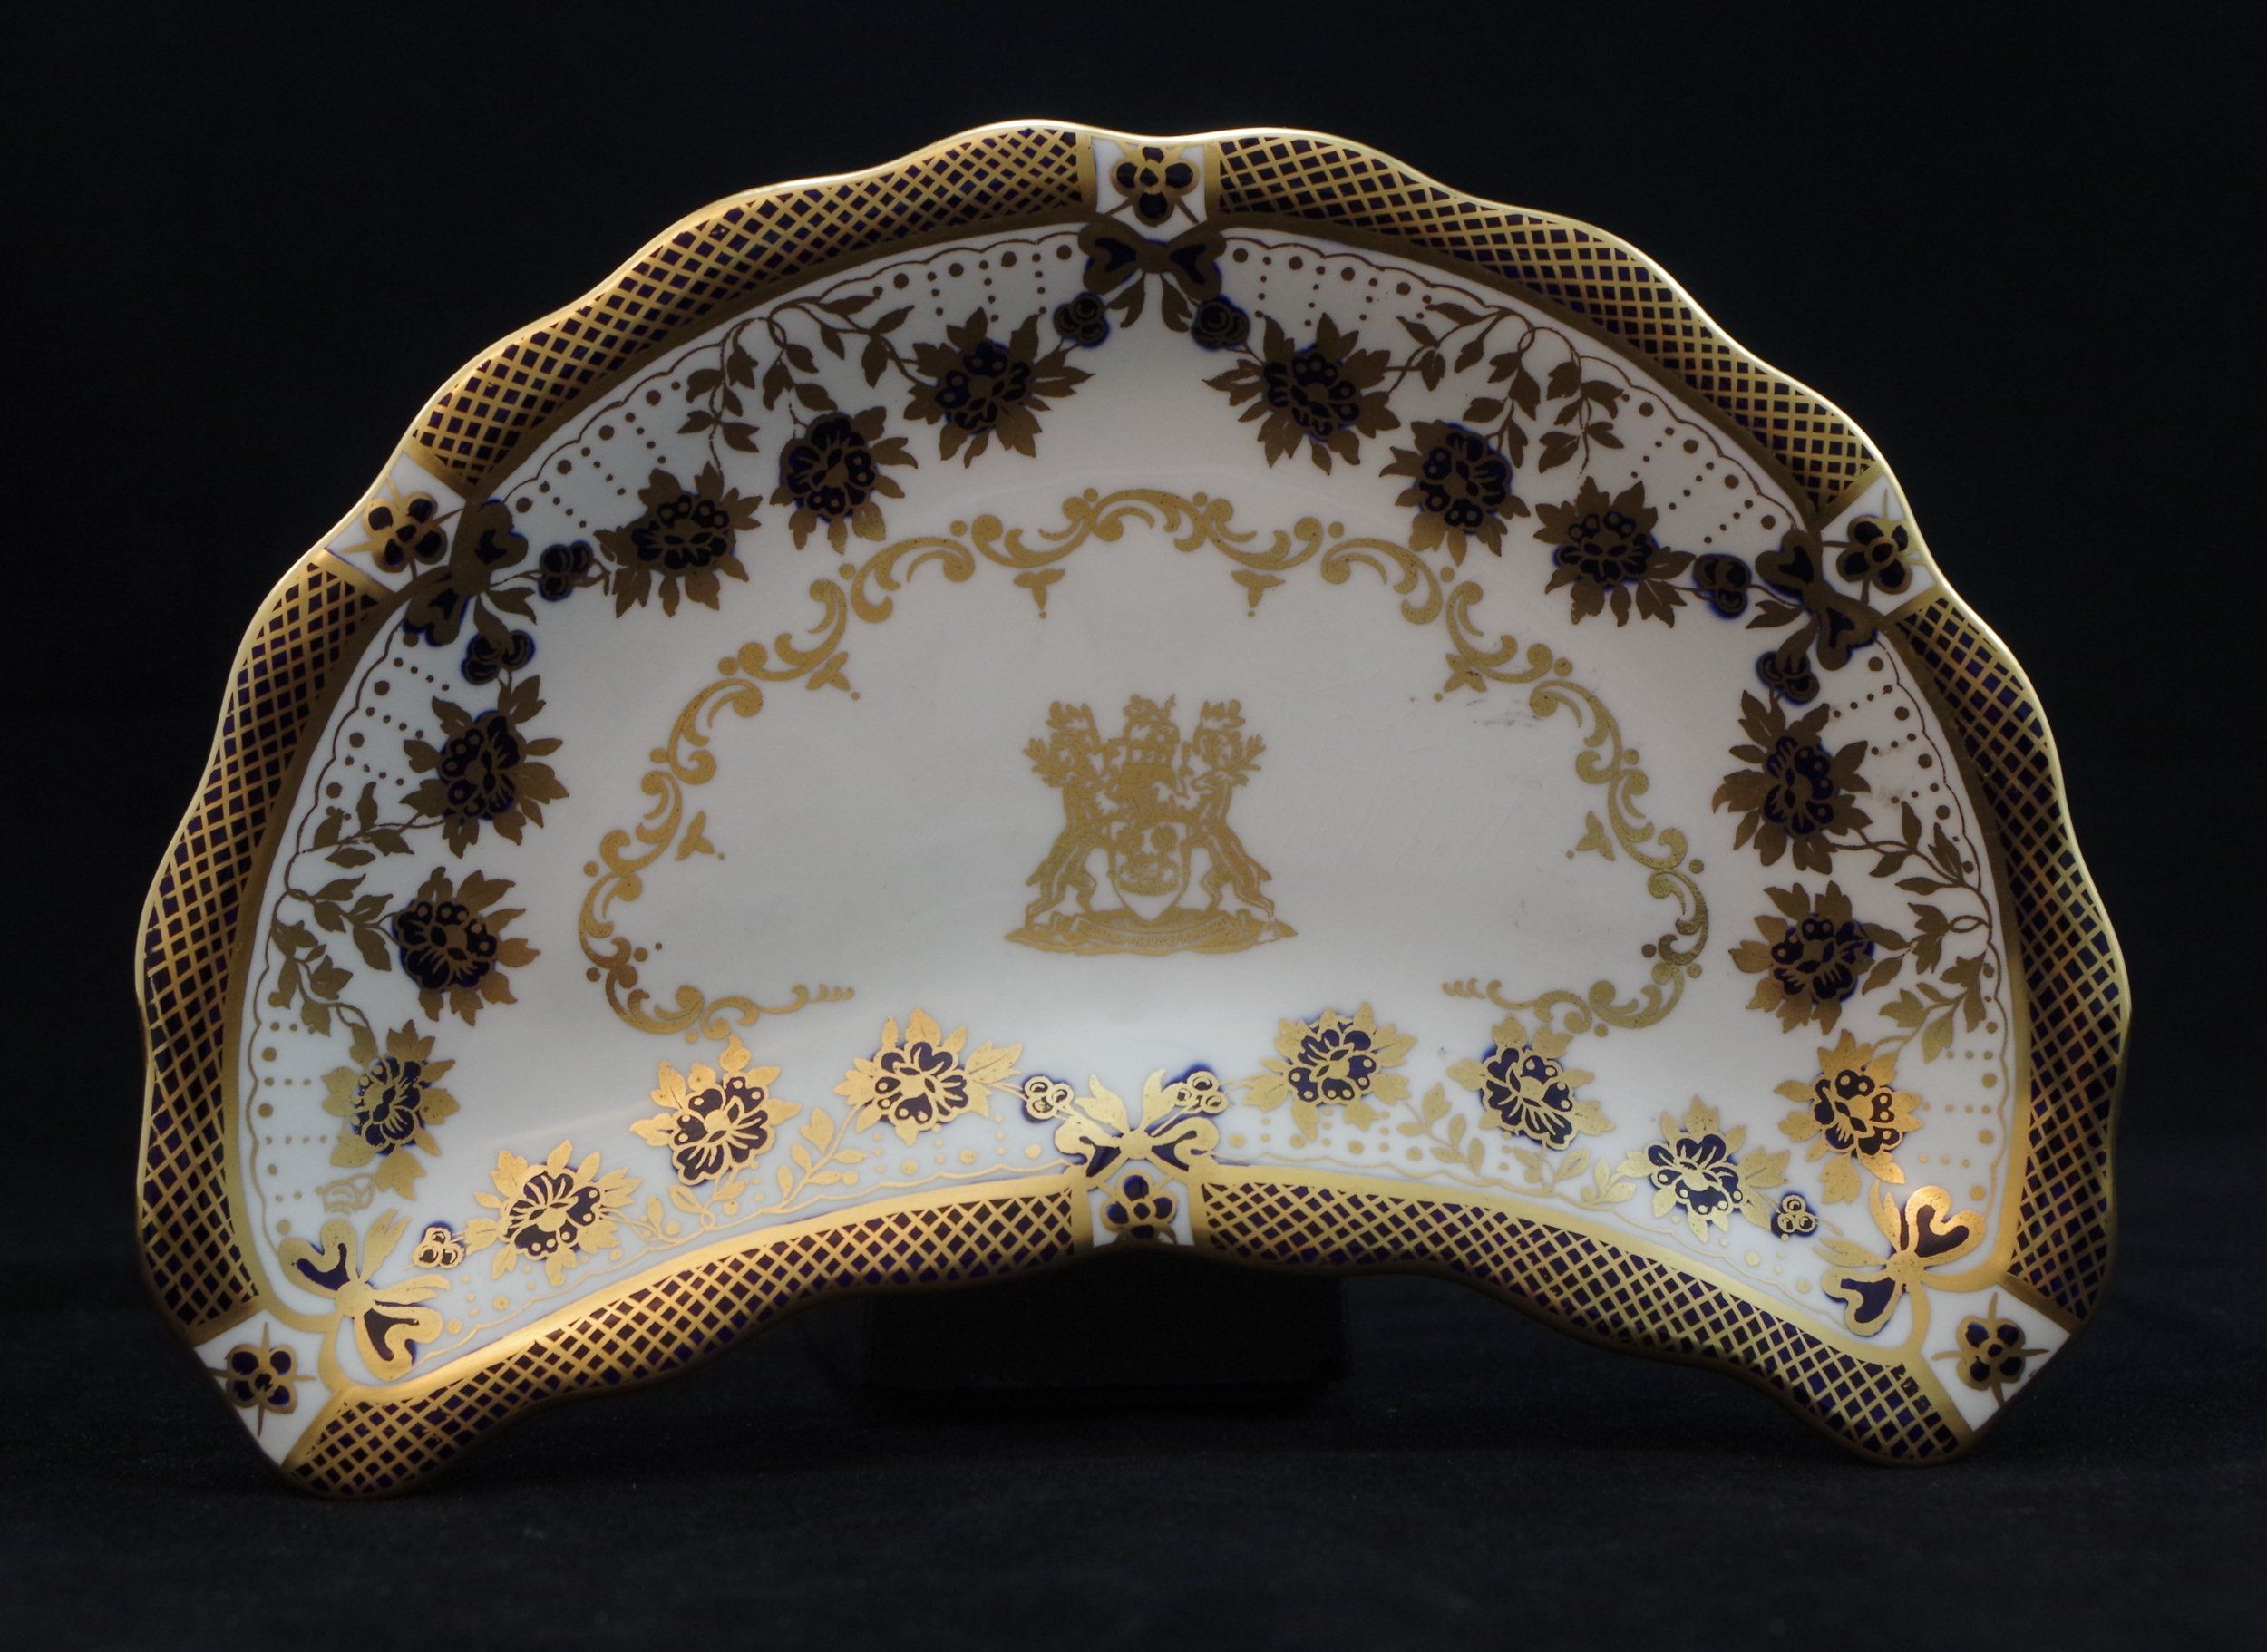 royal-crown-derby-crescent-salad-blue-enamel-borough-of-derby-crest